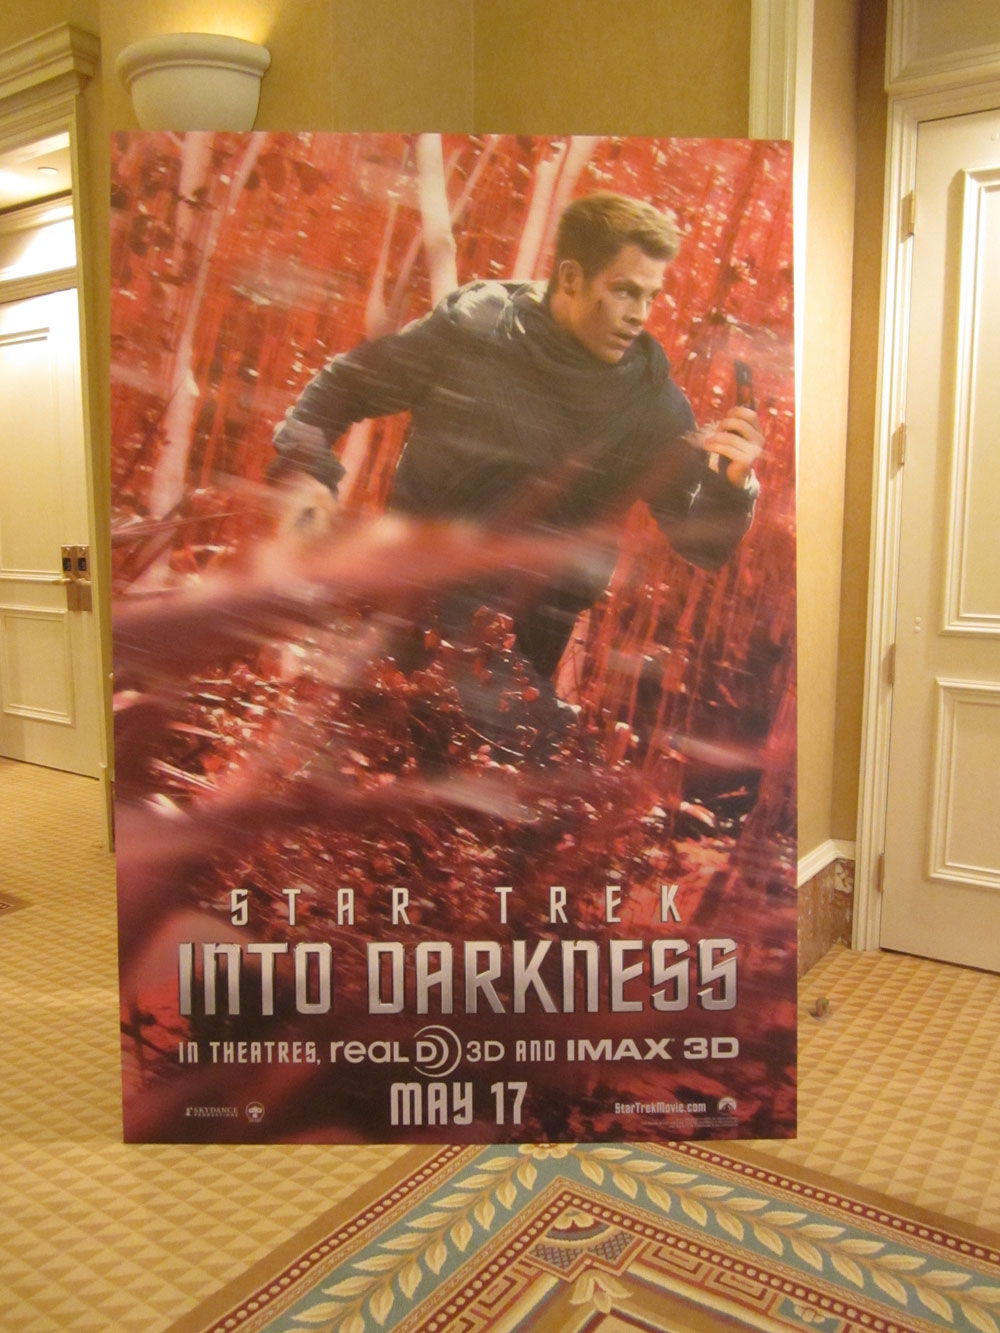 James Kirk Star Trek Into Darkness Poster CinemaCon Shockya CinemaCon 2013: Chris Pine Star Trek Into Darkness Character Poster